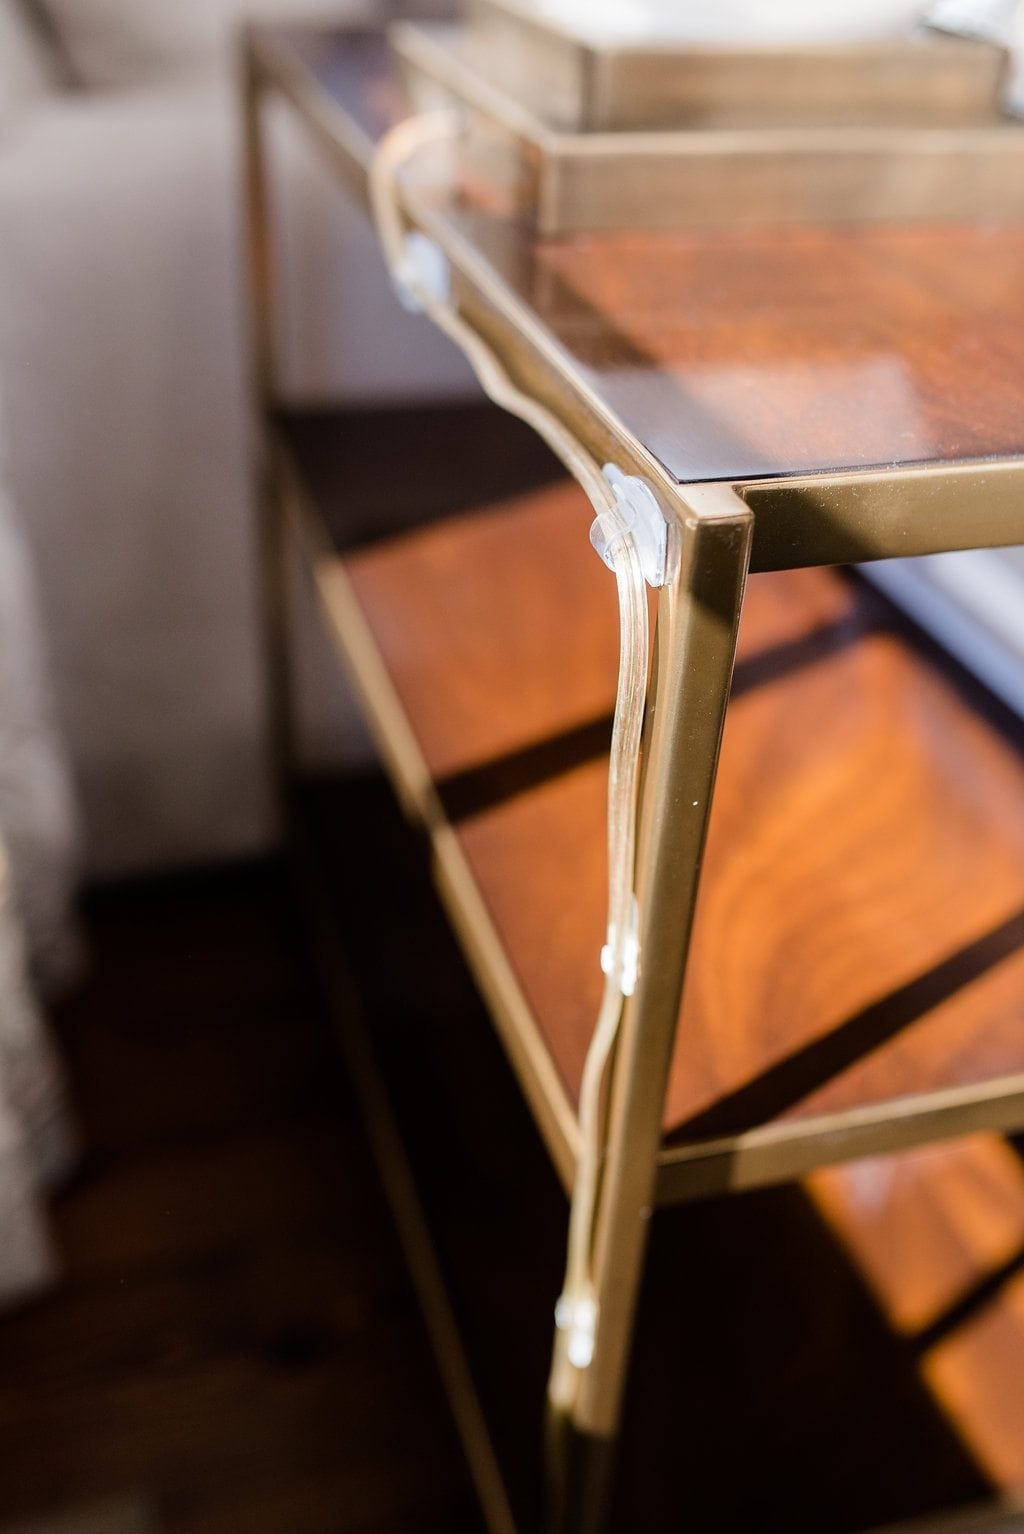 Command hooks to hide lamp cords on the back of furniture.